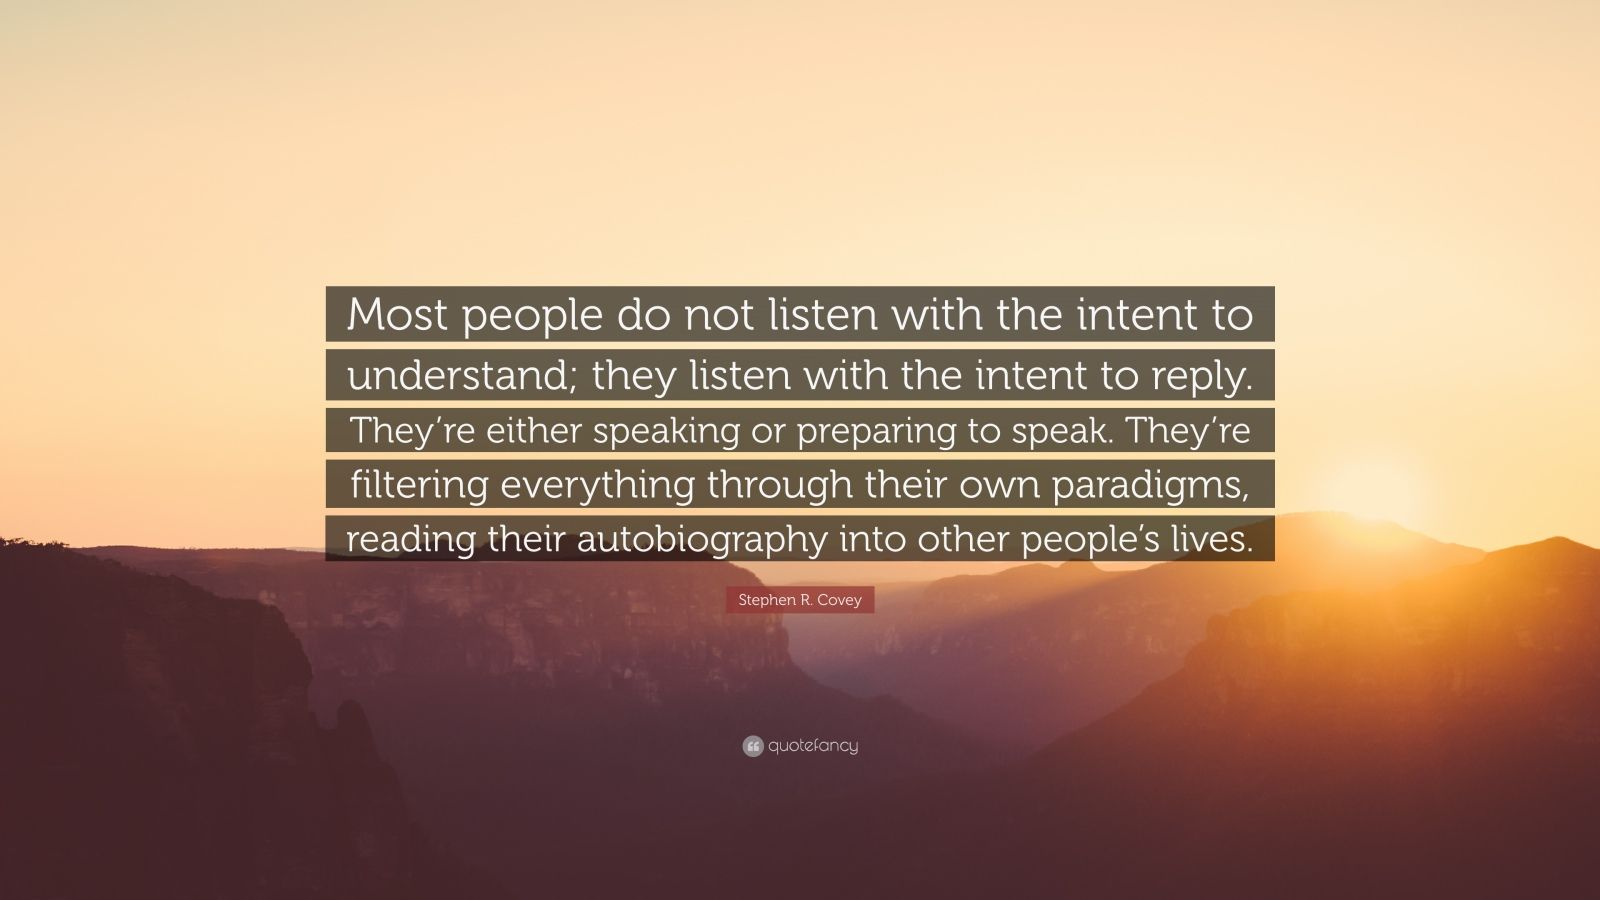 """Stephen R. Covey Quote: """"Most people do not listen with the intent to understand; they listen with the intent to reply. They're either speaking or preparing to speak. They're filtering everything through their own paradigms, reading their autobiography into other people's lives."""""""